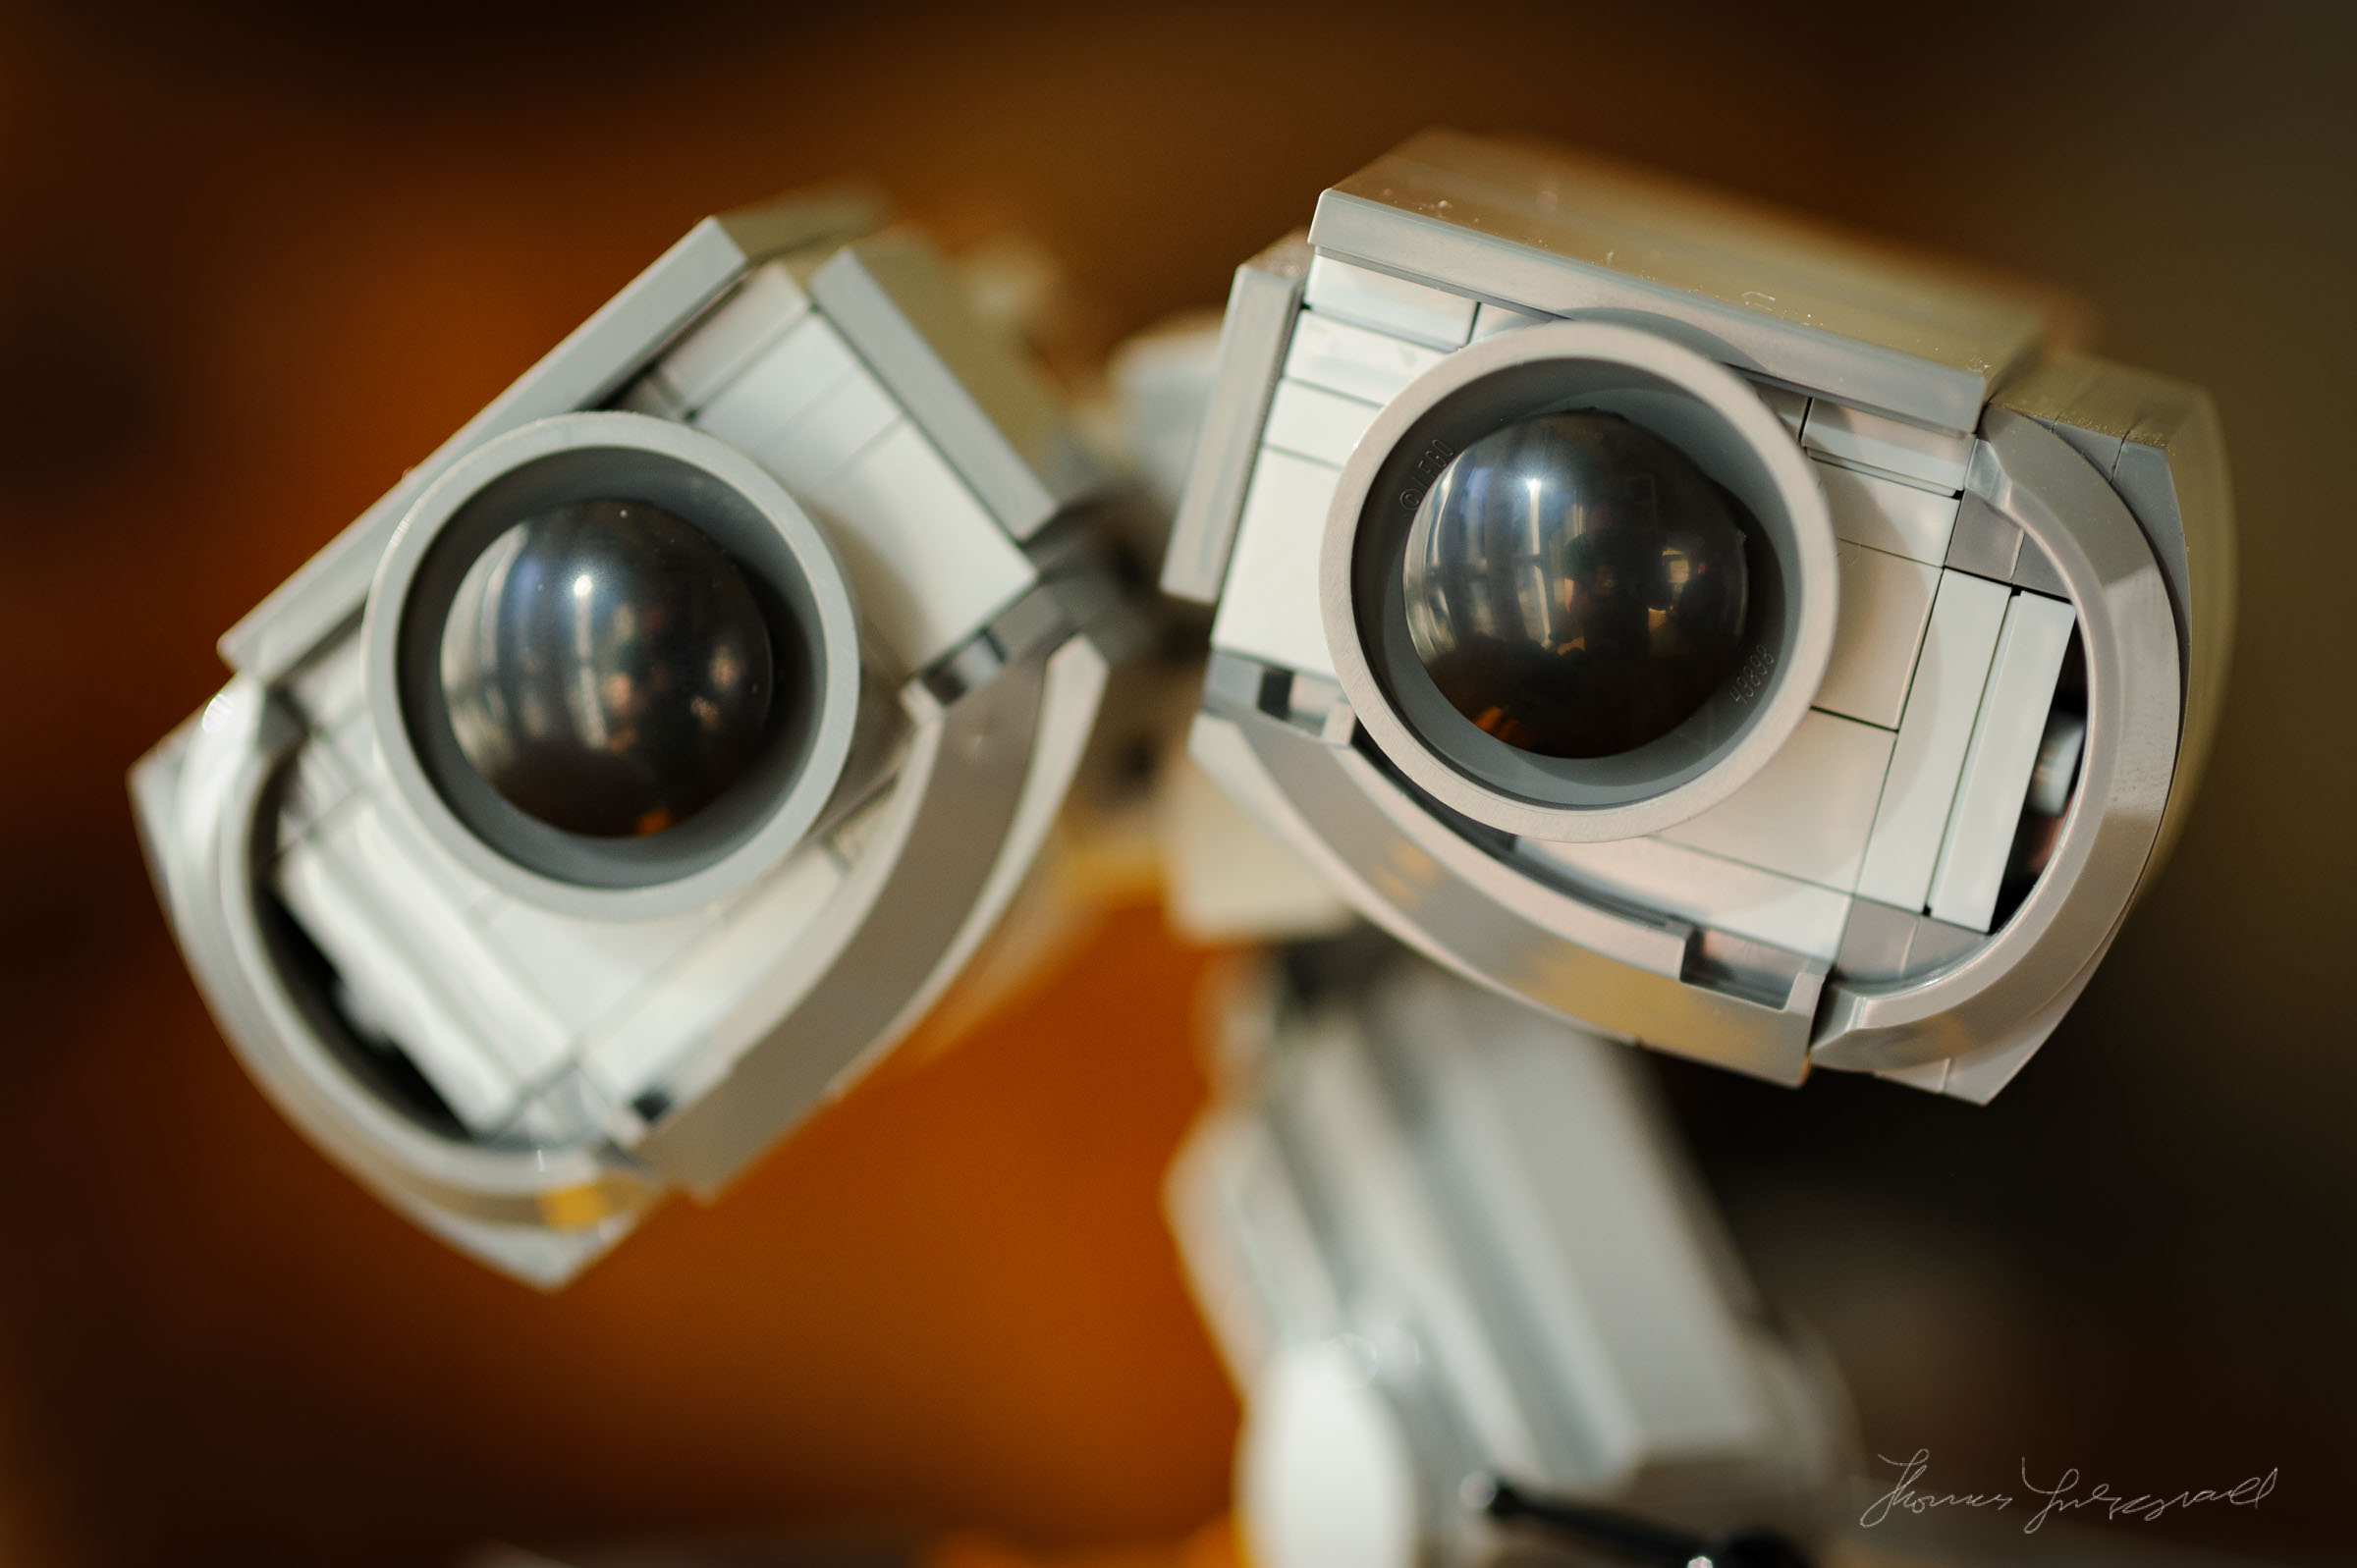 Lego Wall-E: Toy Photography by Thomas Fitzgerald Photography